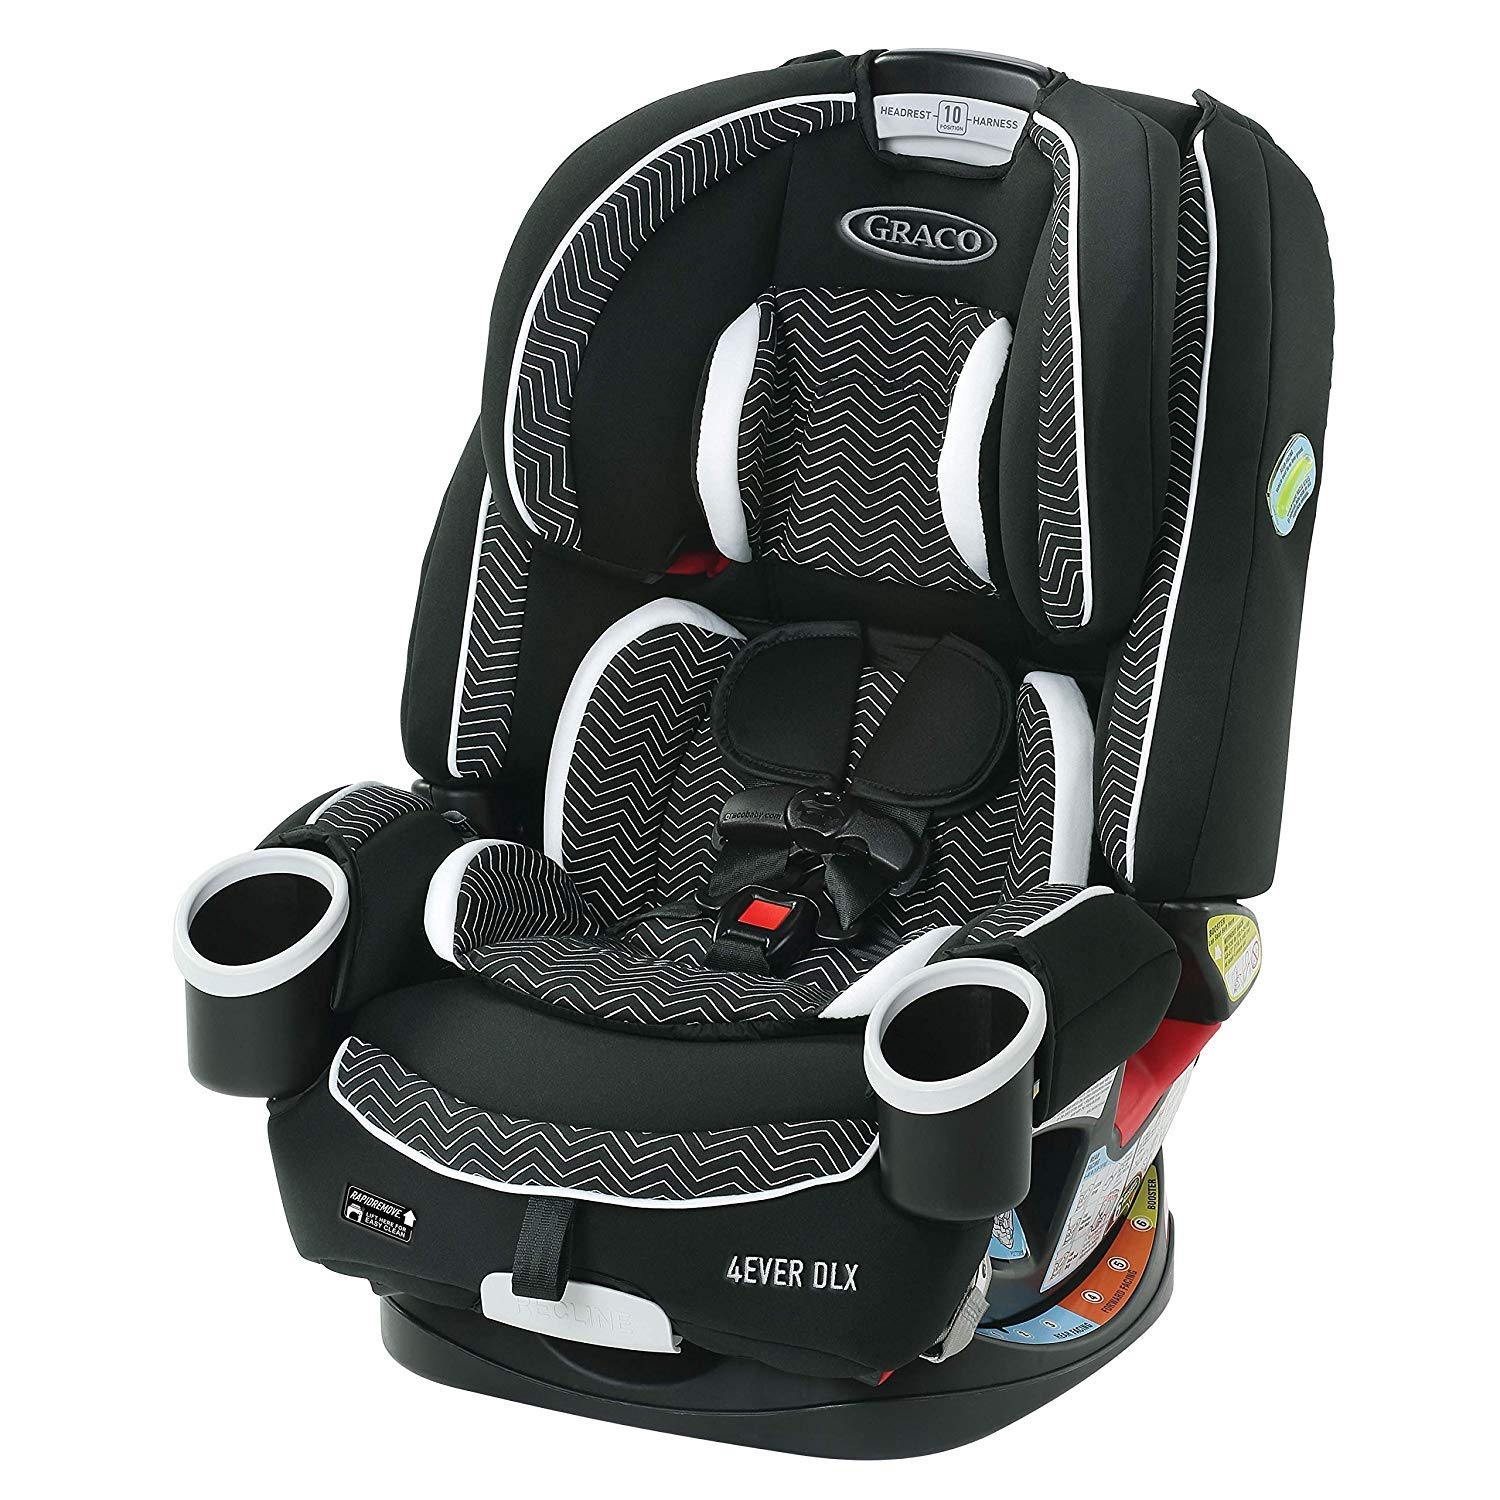 Graco 4Ever DLX 4 in 1 Car Seat | Infant to Toddler Car Seat, with 10 Years of Use, Zagg